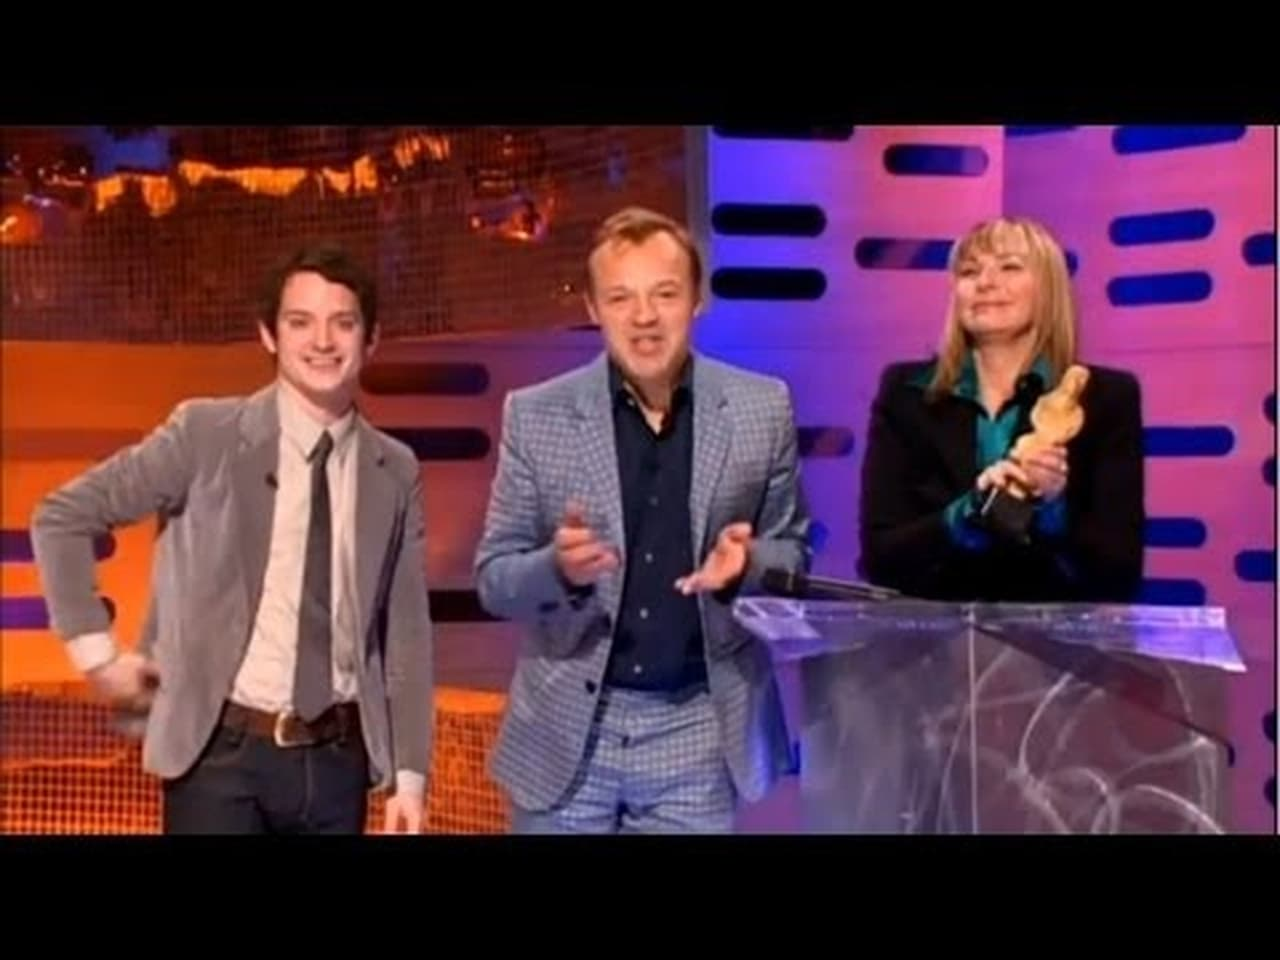 The Graham Norton Show - Season 1 Episode 1 : Elijah Wood, Kim Cattrall and Heloise and the Savoir Faire (2020)